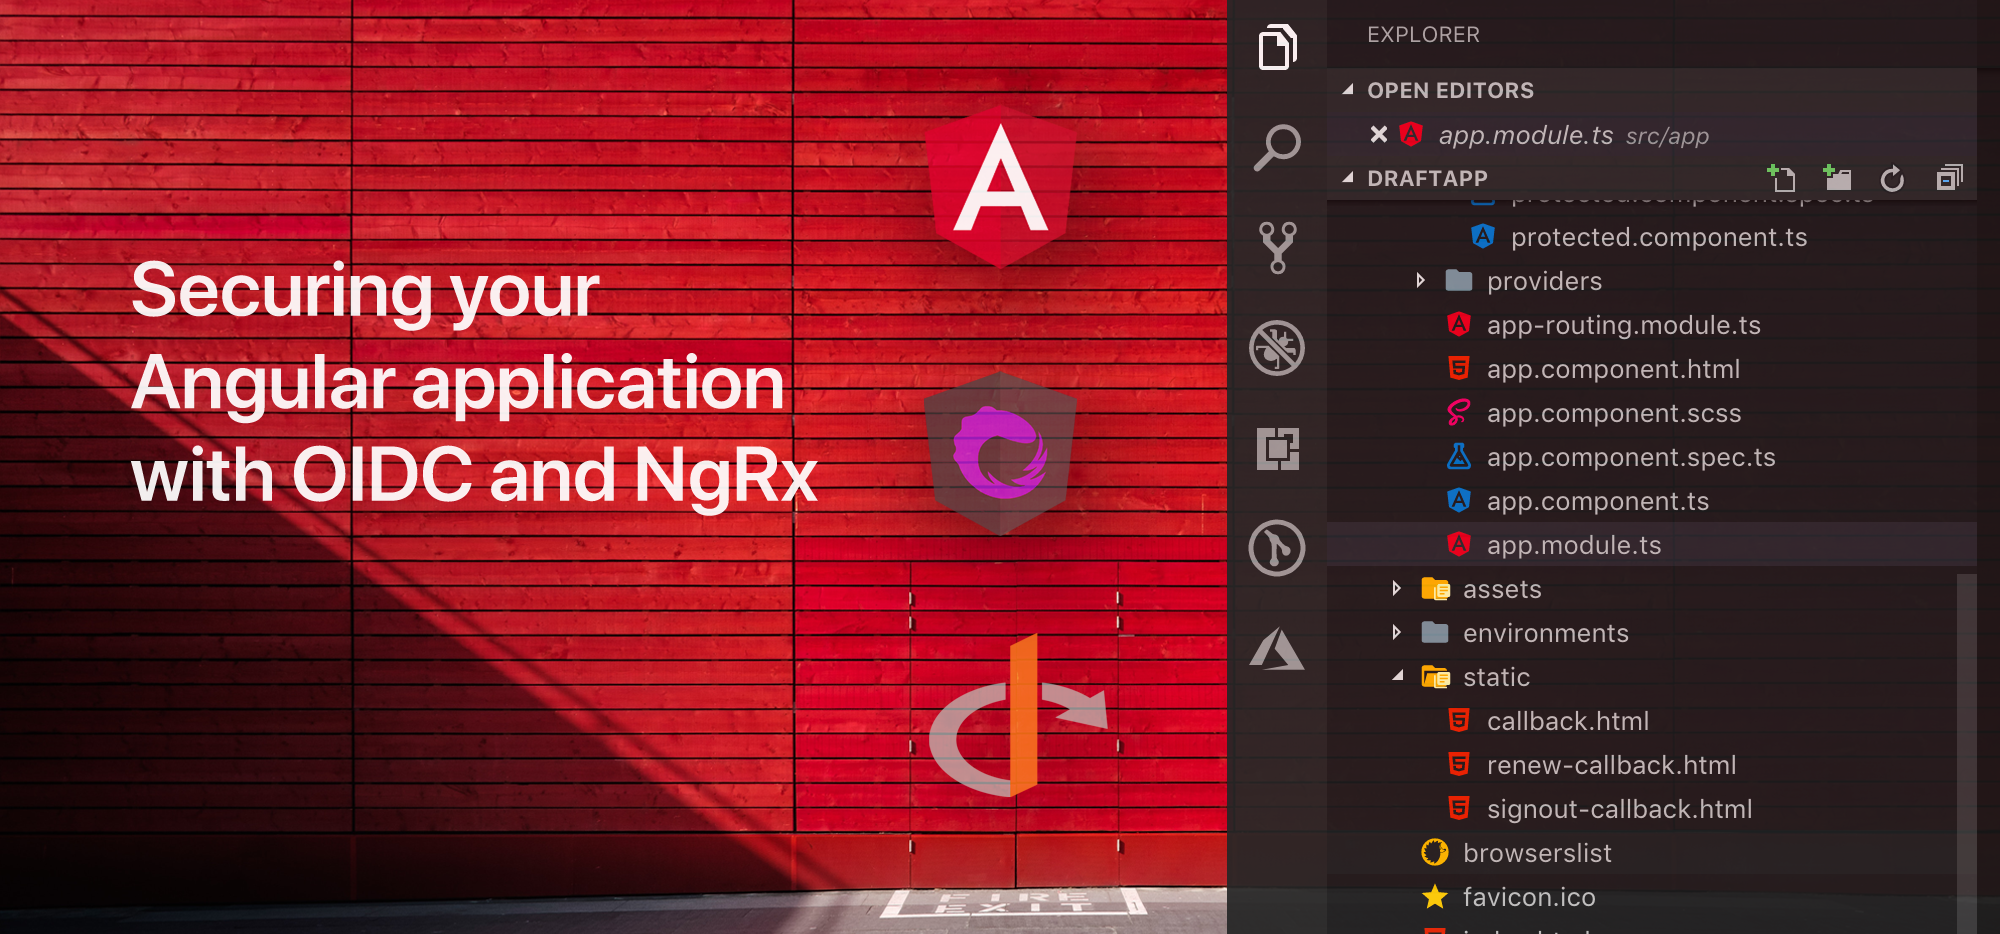 Securing your Angular 7+ application with OIDC and NgRx